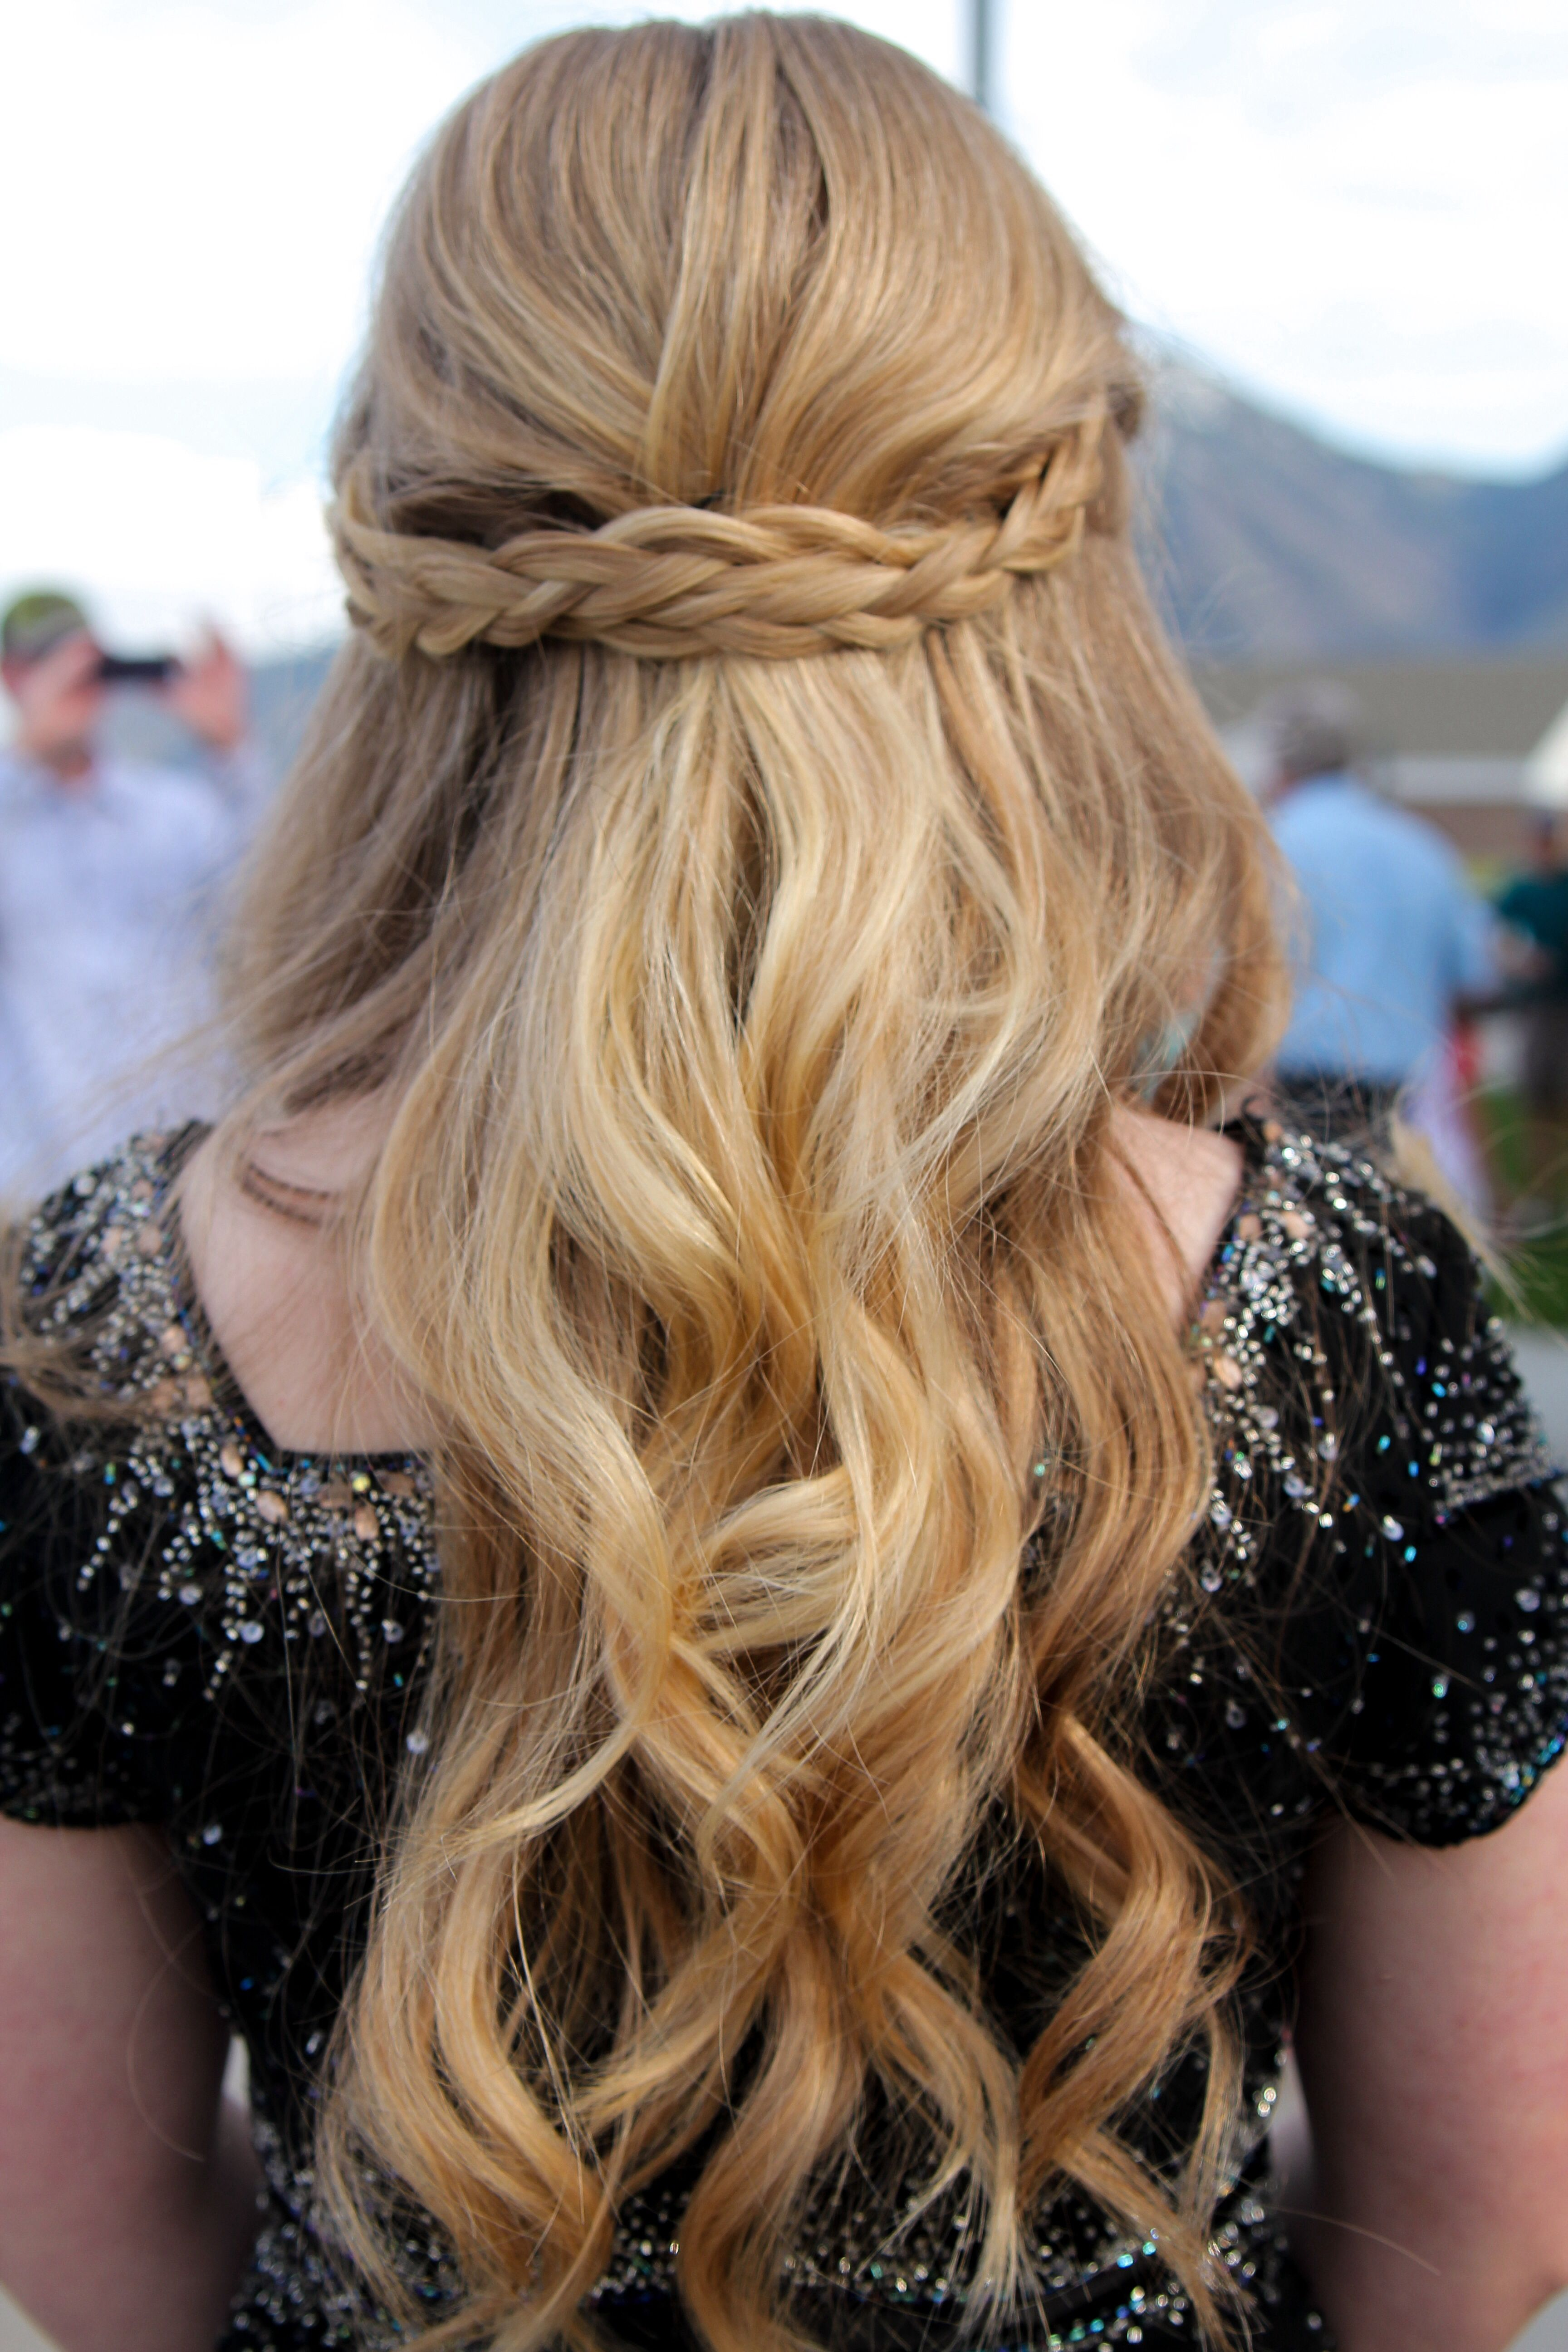 Enjoyable Prom Hair Brides And Homecoming On Pinterest Hairstyle Inspiration Daily Dogsangcom